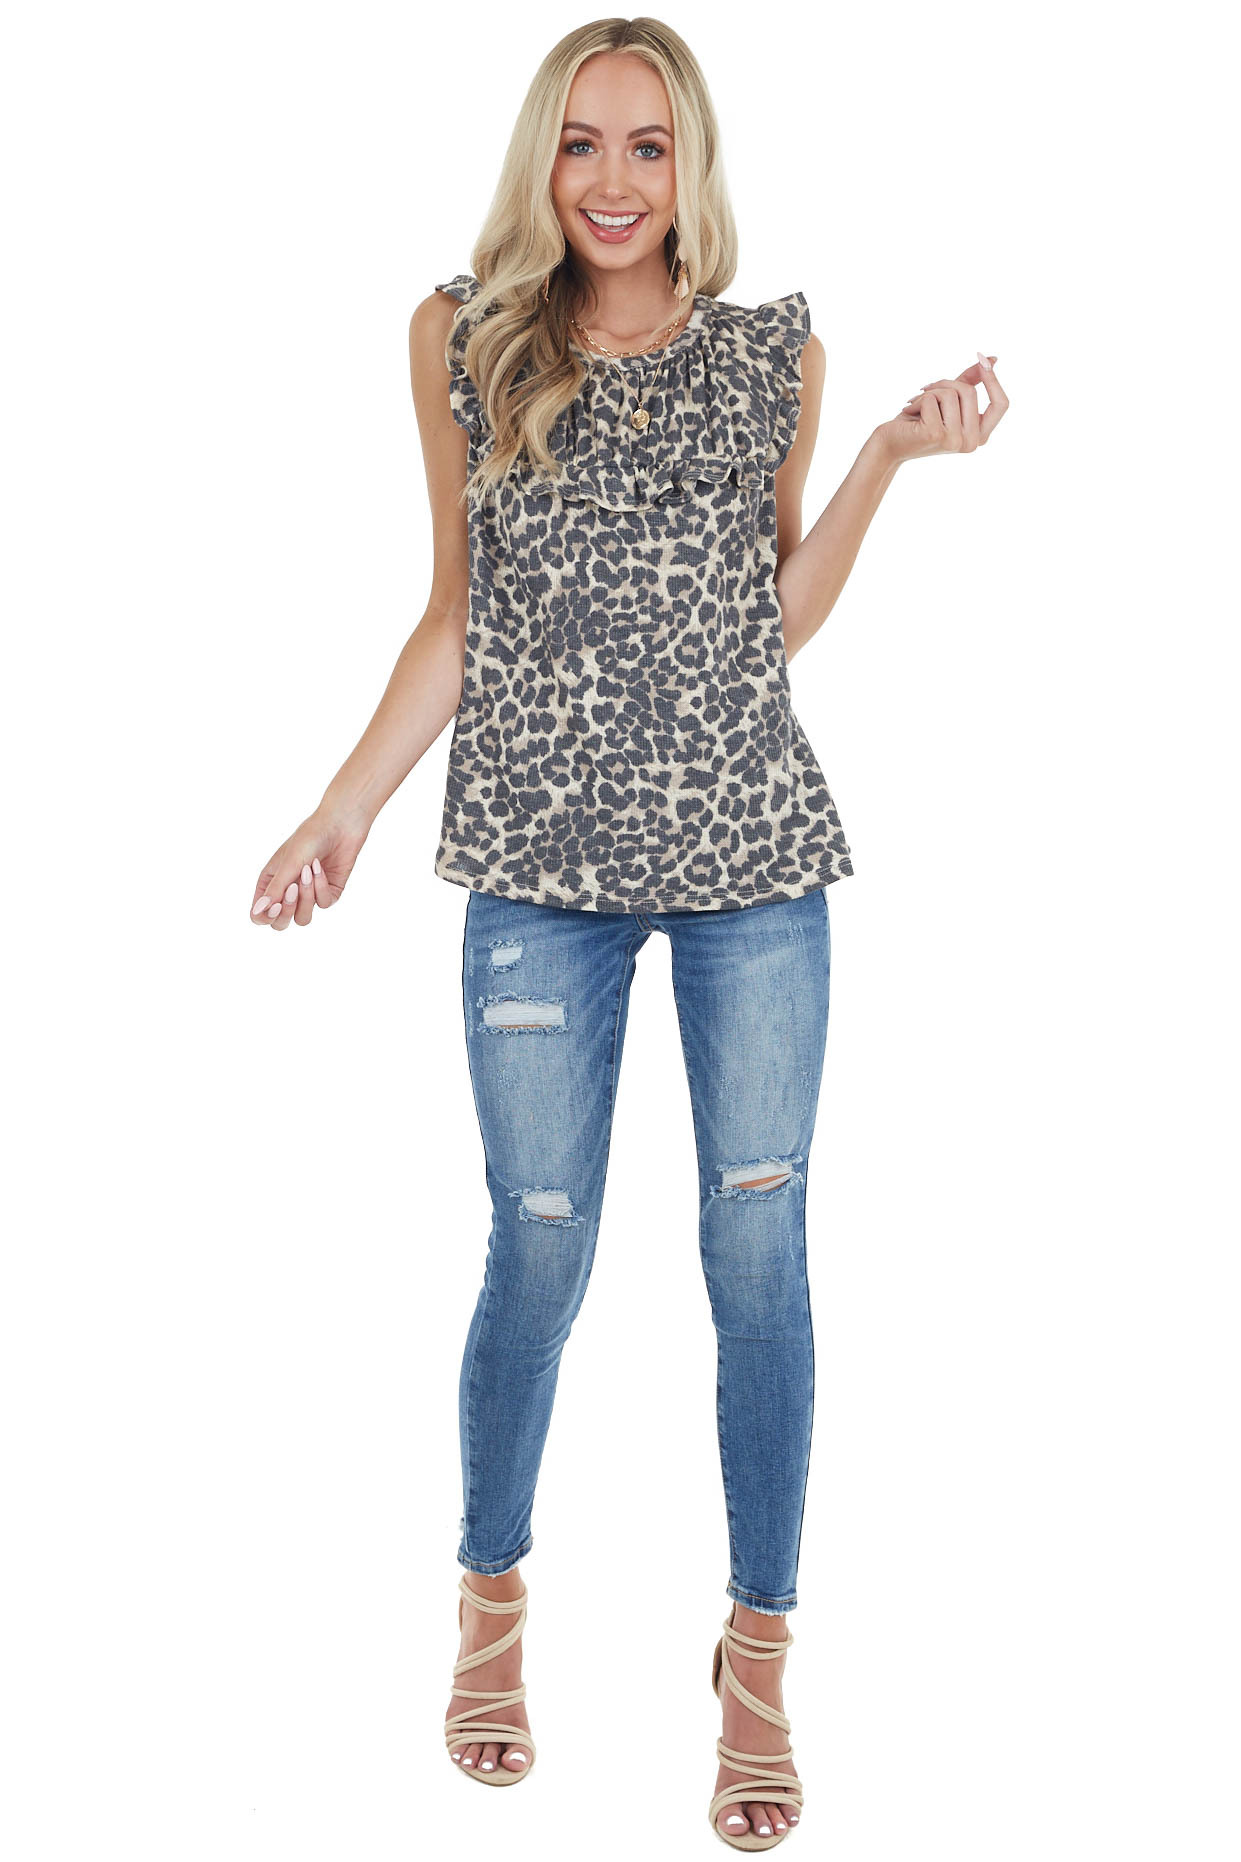 Beige Leopard Print Babydoll Top with Ruffle Details